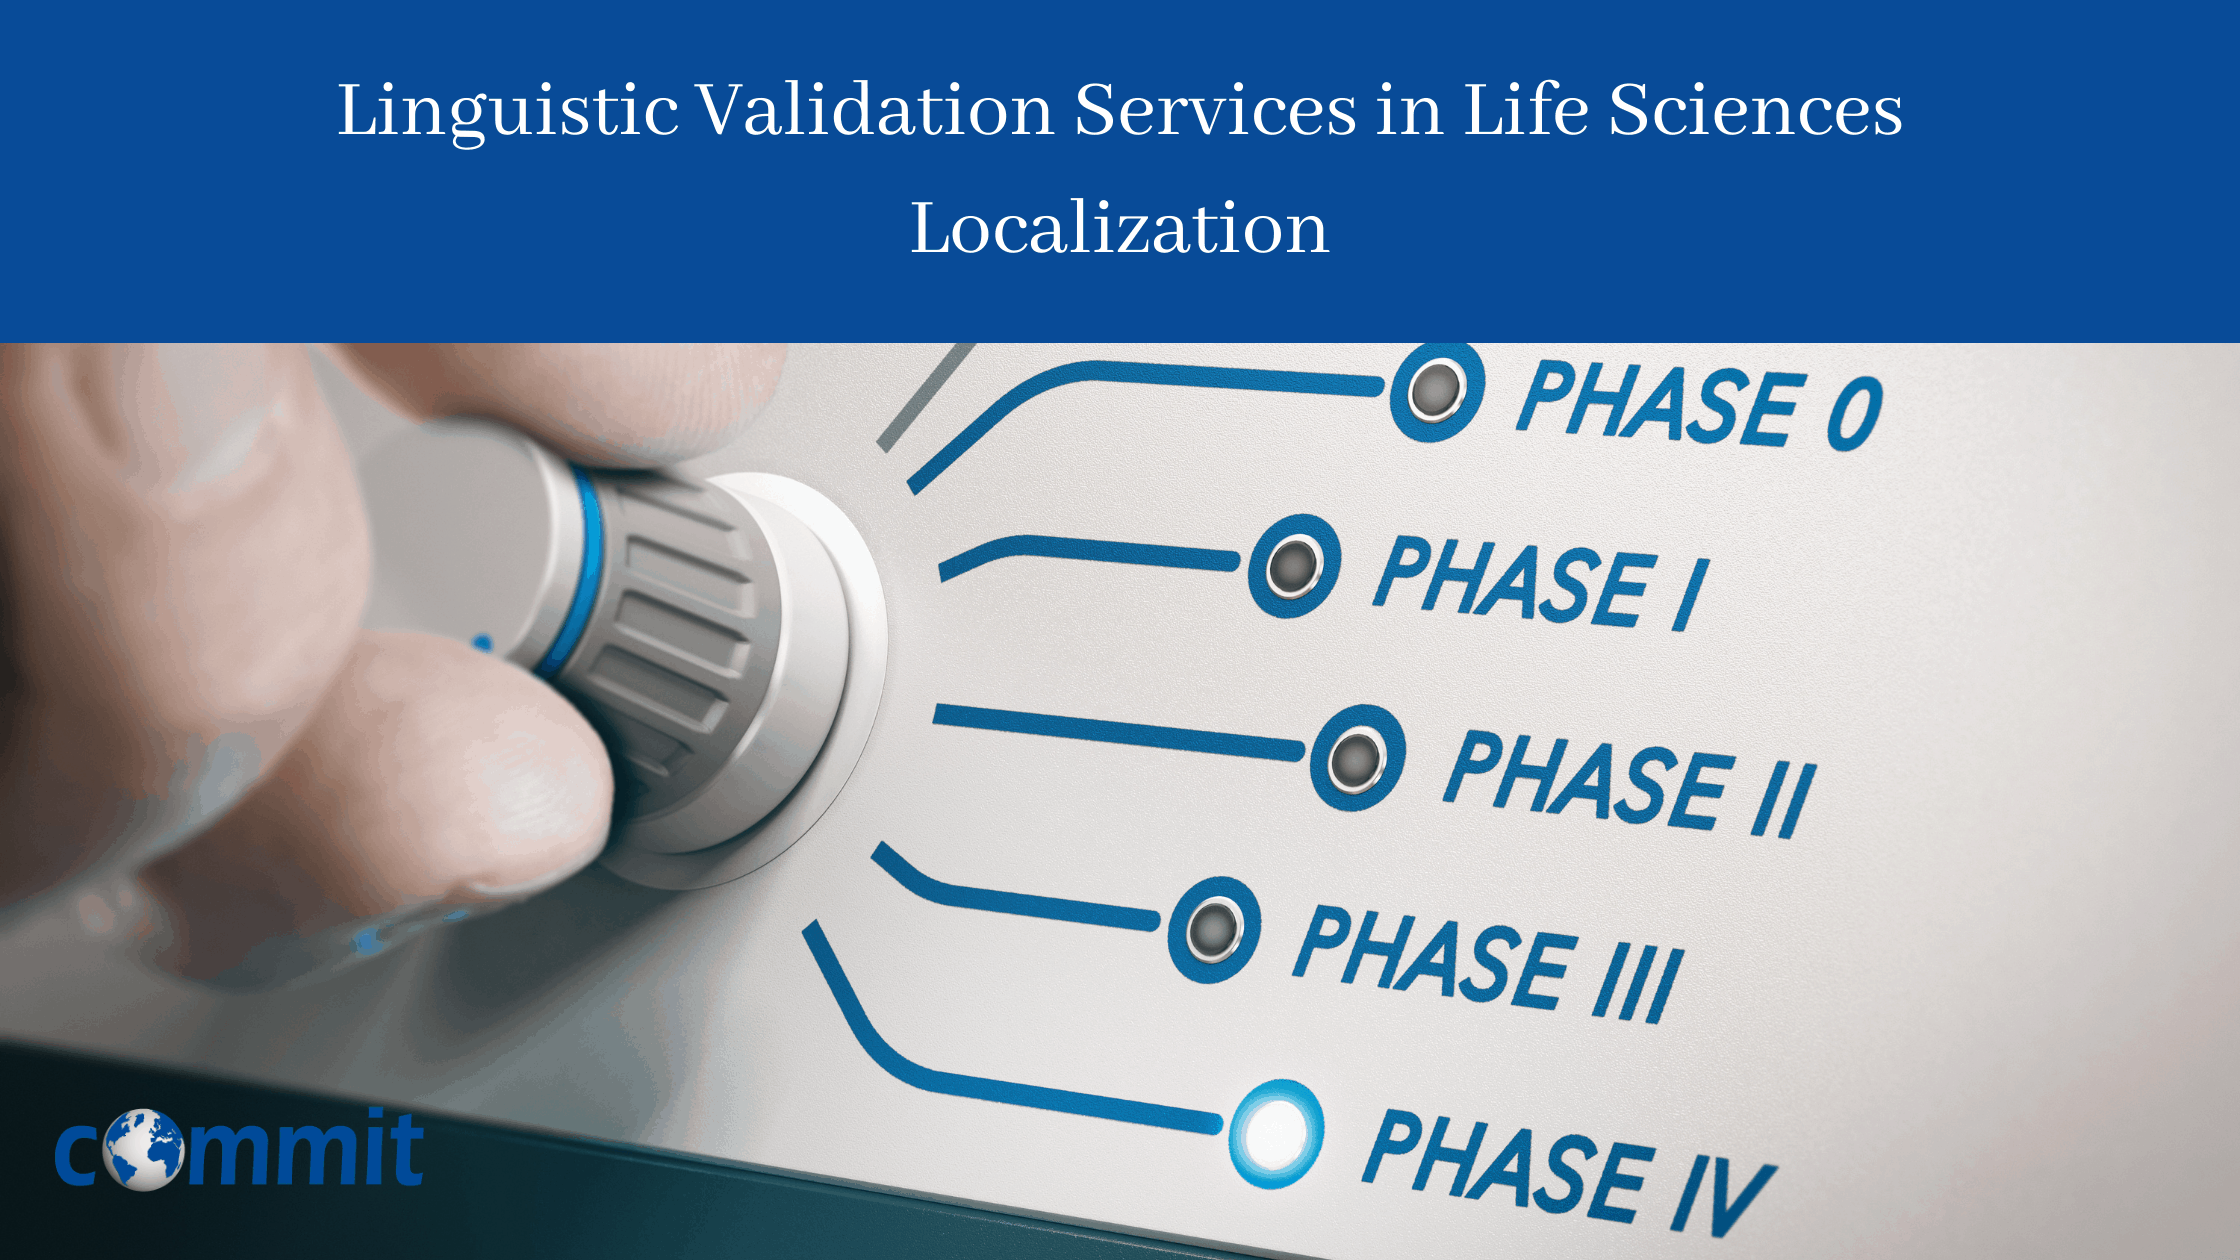 Linguistic Validation Services in Life Sciences Localization